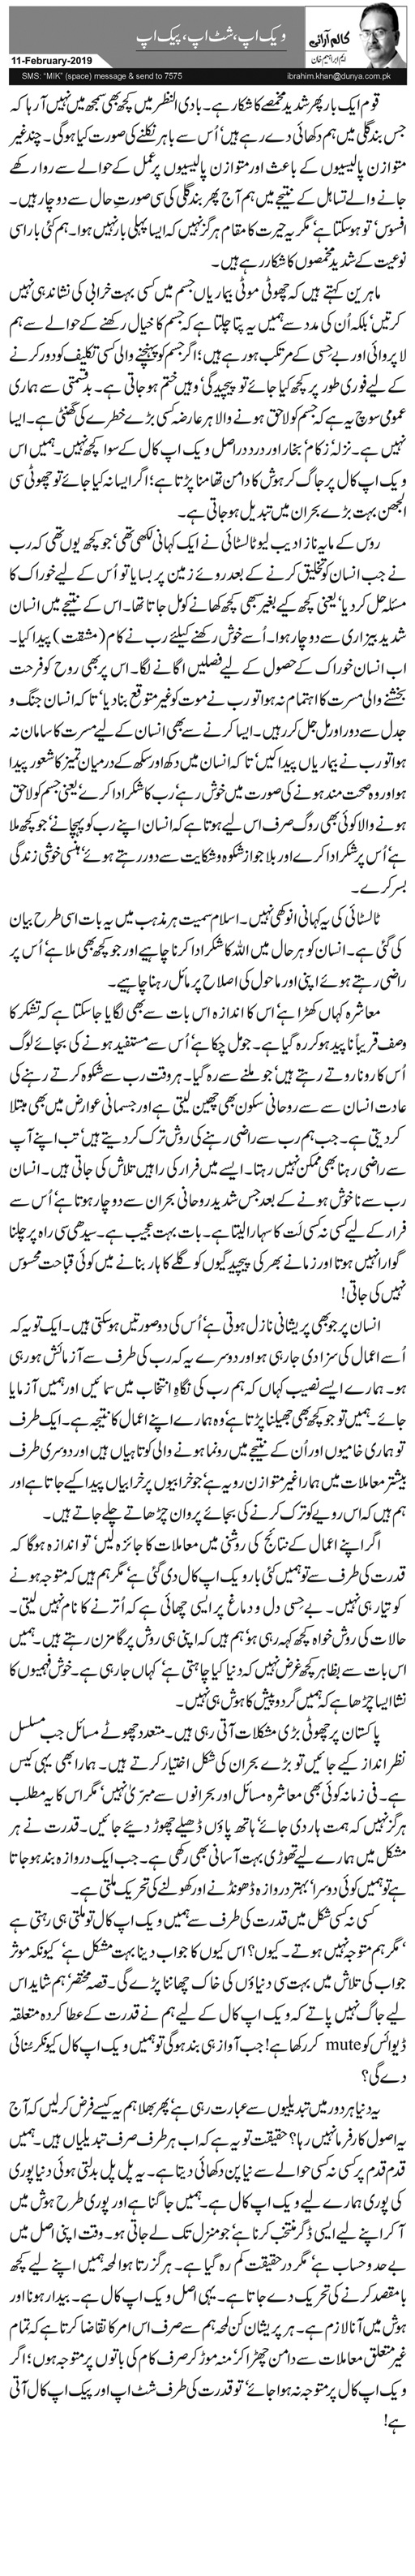 Wake Up, Shut Up, Pack Up | M Ibrahim Khan | Daily Urdu Columns